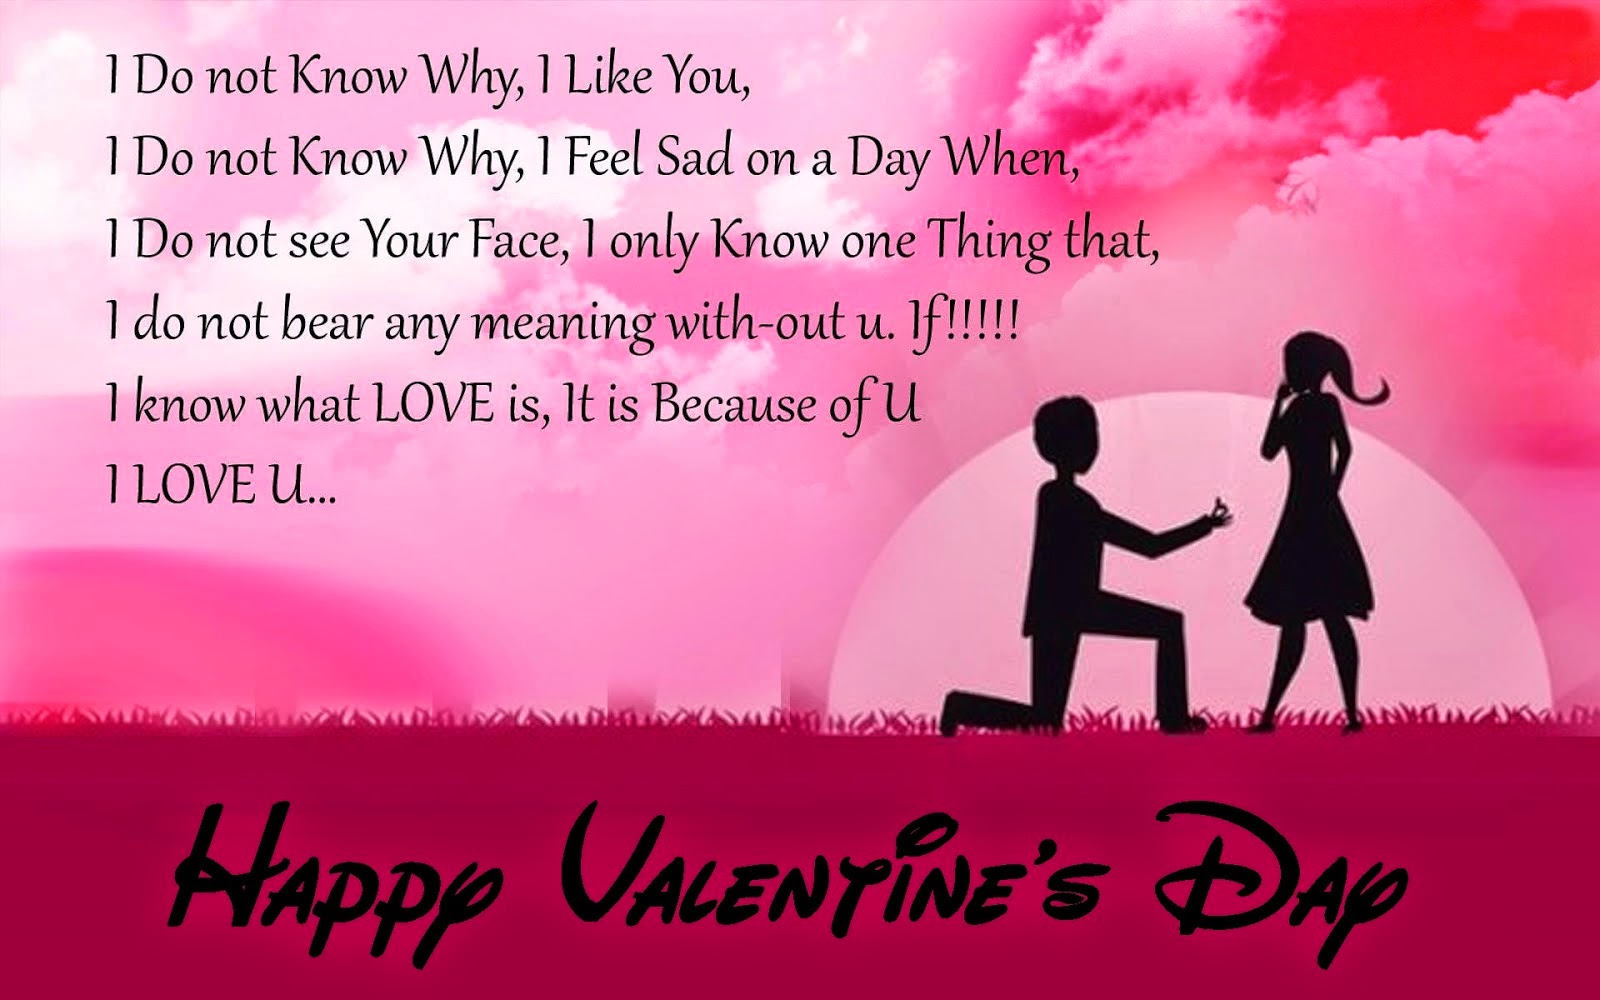 valentines day images with quotes for her 2018